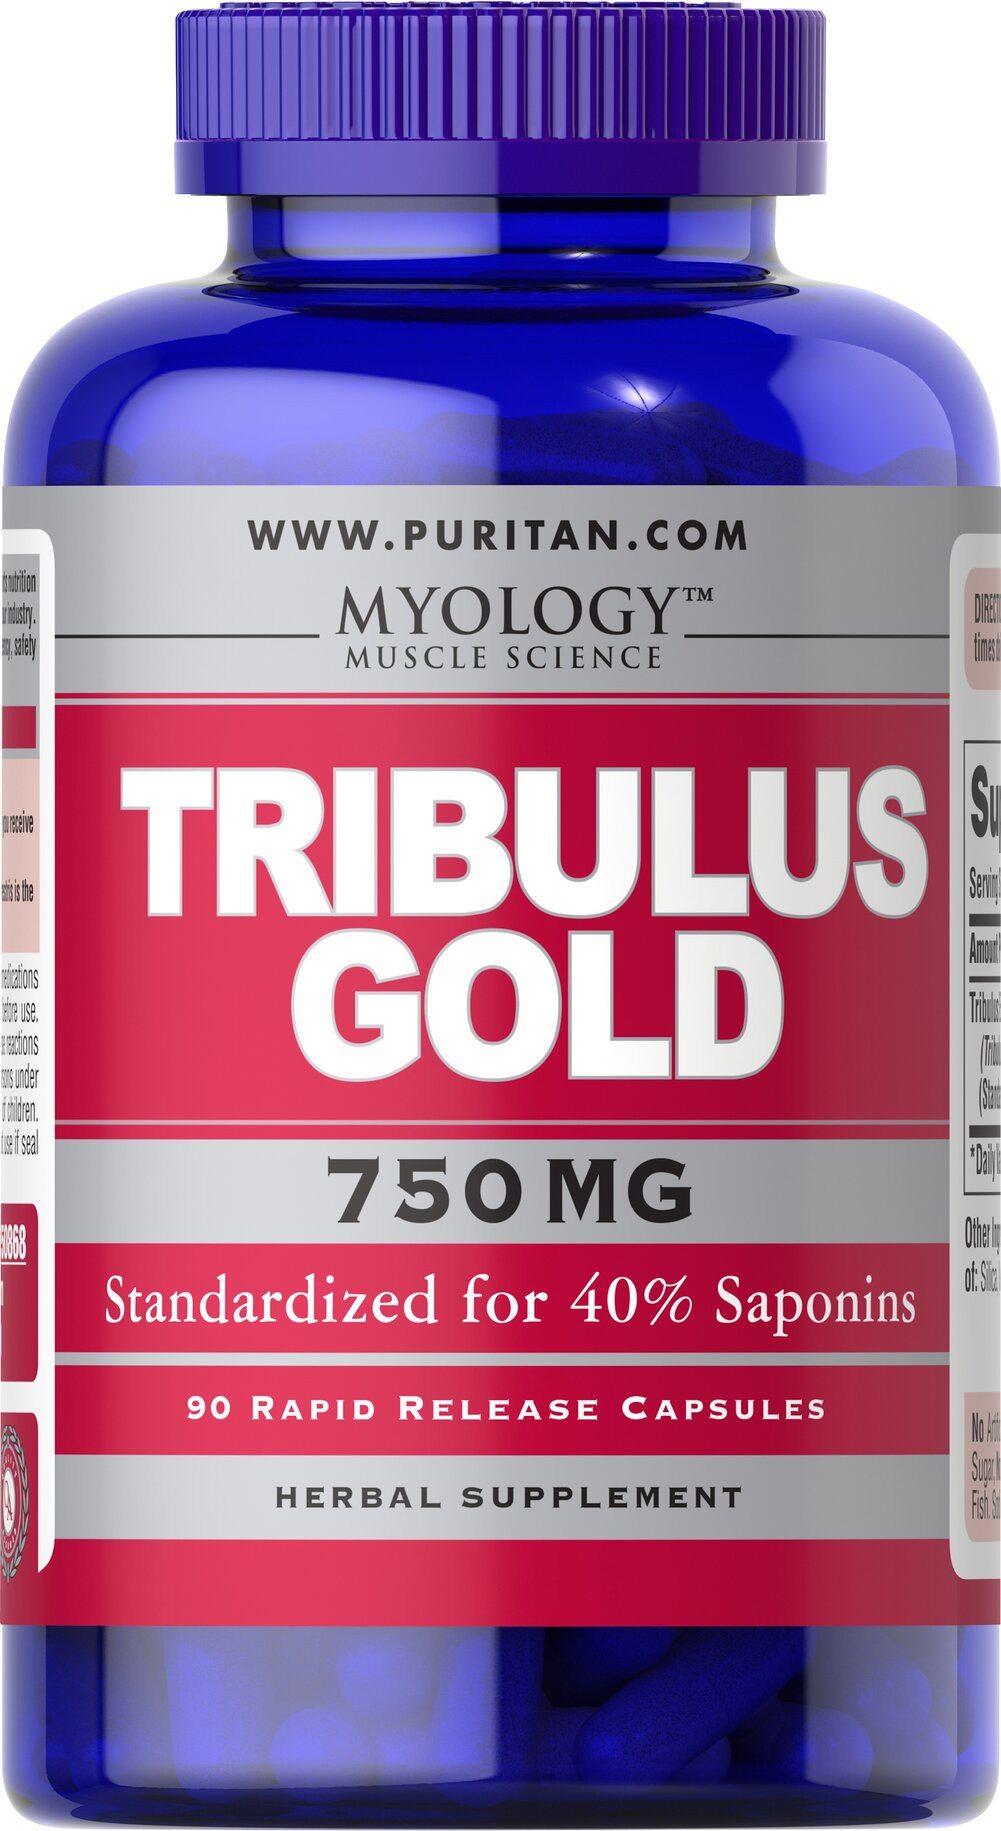 Tribulus Gold Standardized Extract 750 mg Tribulus GOLD <p>•Lab-tested for 40% saponins per serving, to help ensure you receive the active components.</p><p>•An herb traditionally used by bodybuilders, Tribulus Terrestris is the perfect complement to your hardcore training regimen!</p><p></p><p></p> 90 Capsules 750 mg $17.99